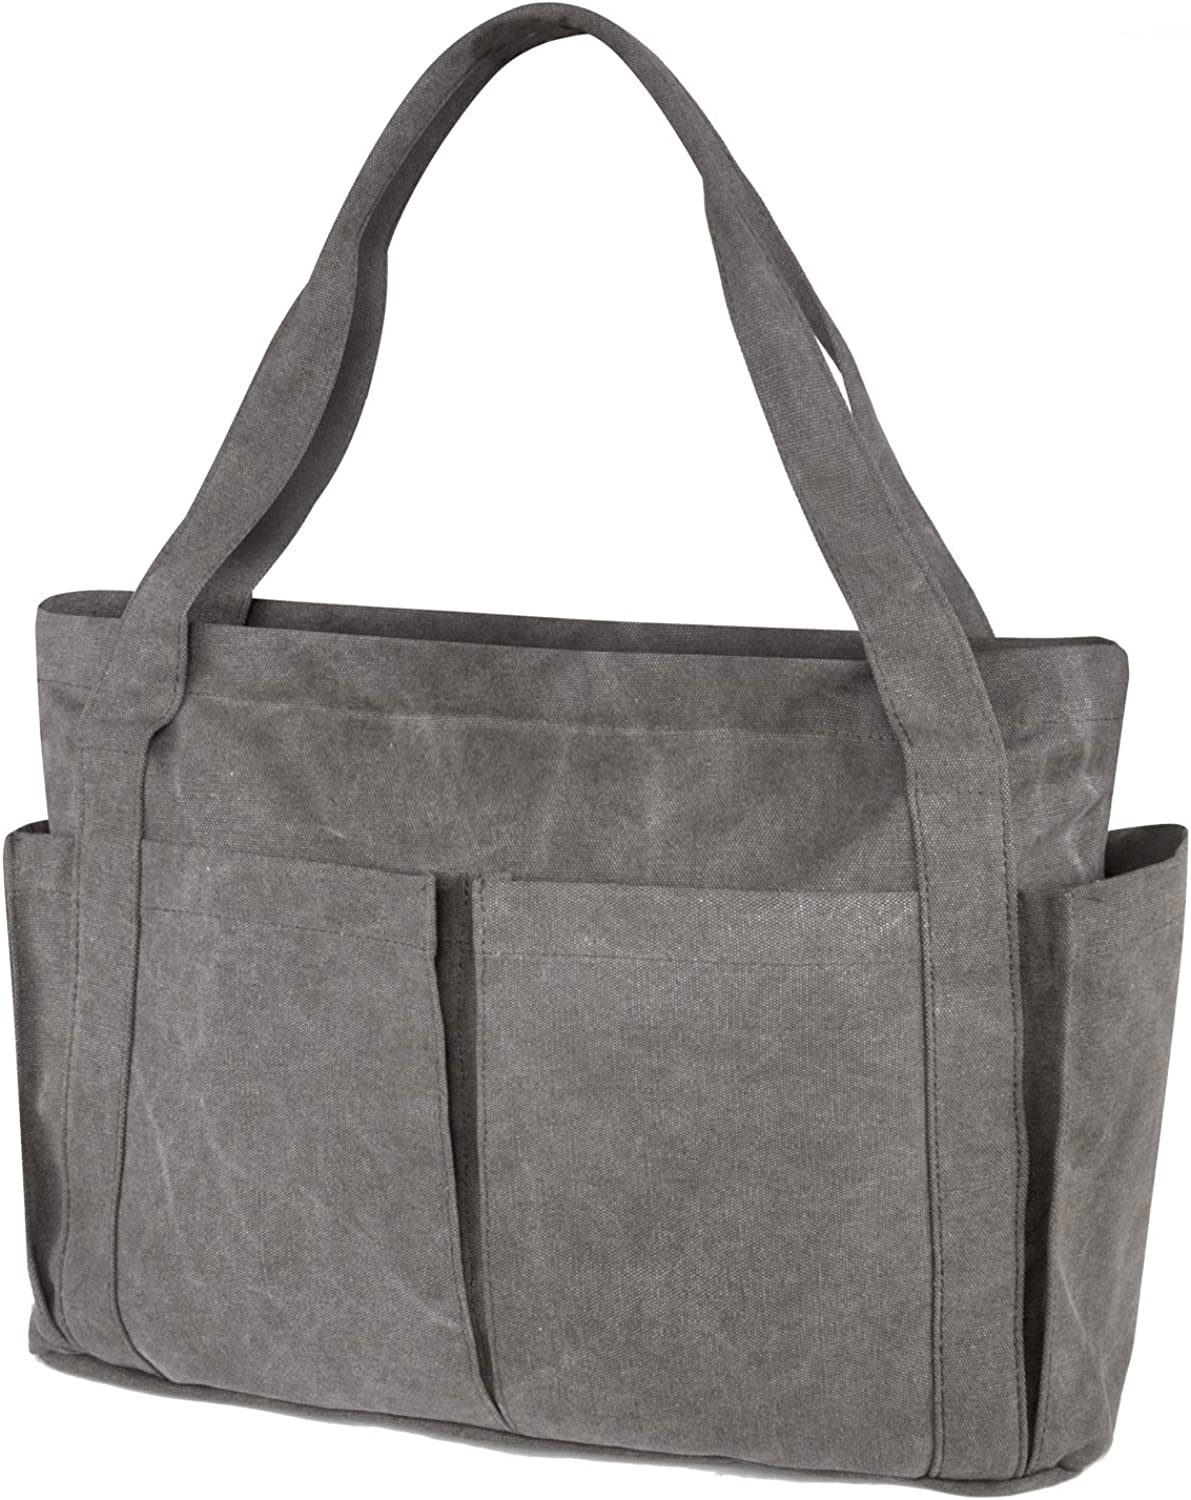 Women's Tote Bag Canvas...